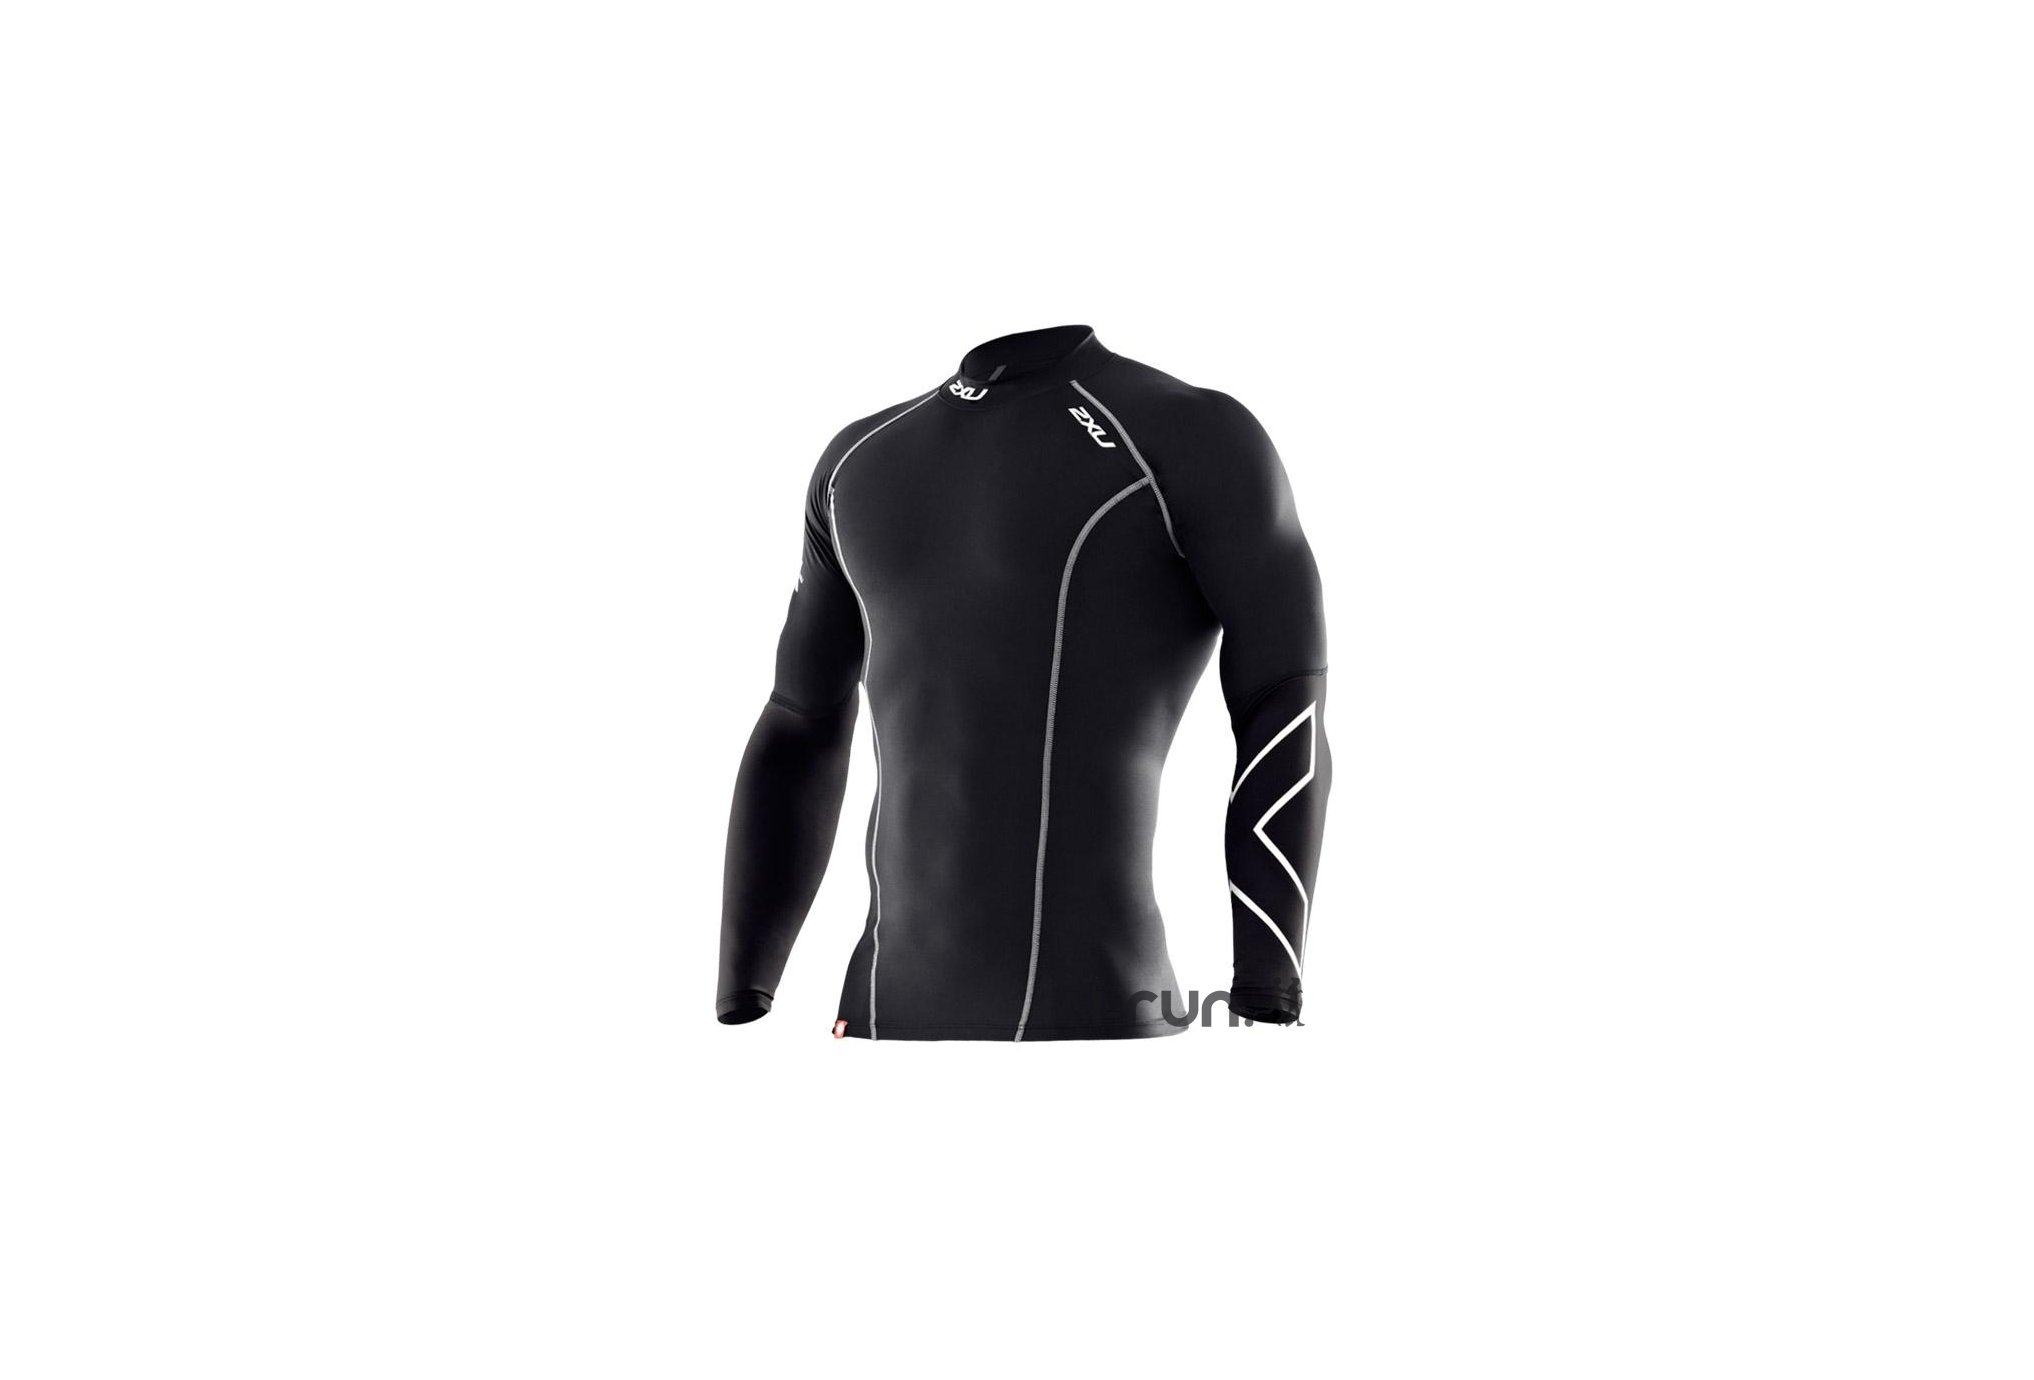 2xu Tee-Shirt l/s thermal compression m vêtement running homme